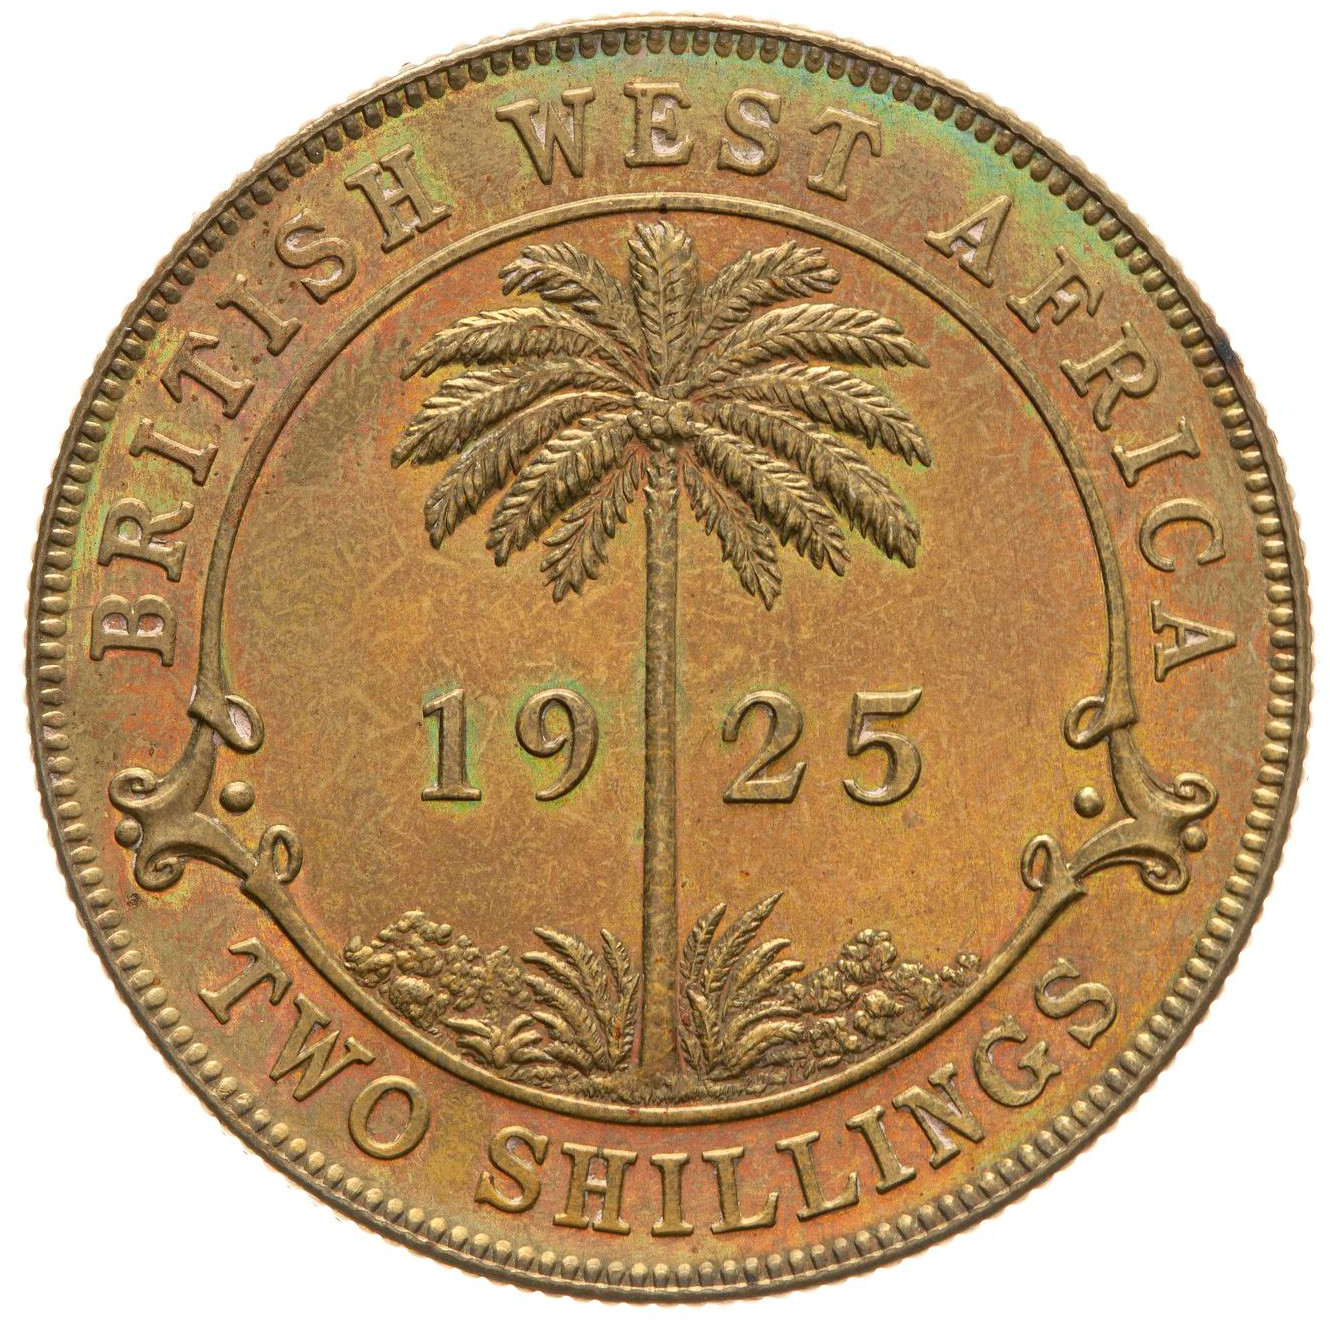 Two Shillings: Photo Proof Coin - 2 Shillings, British West Africa, 1925